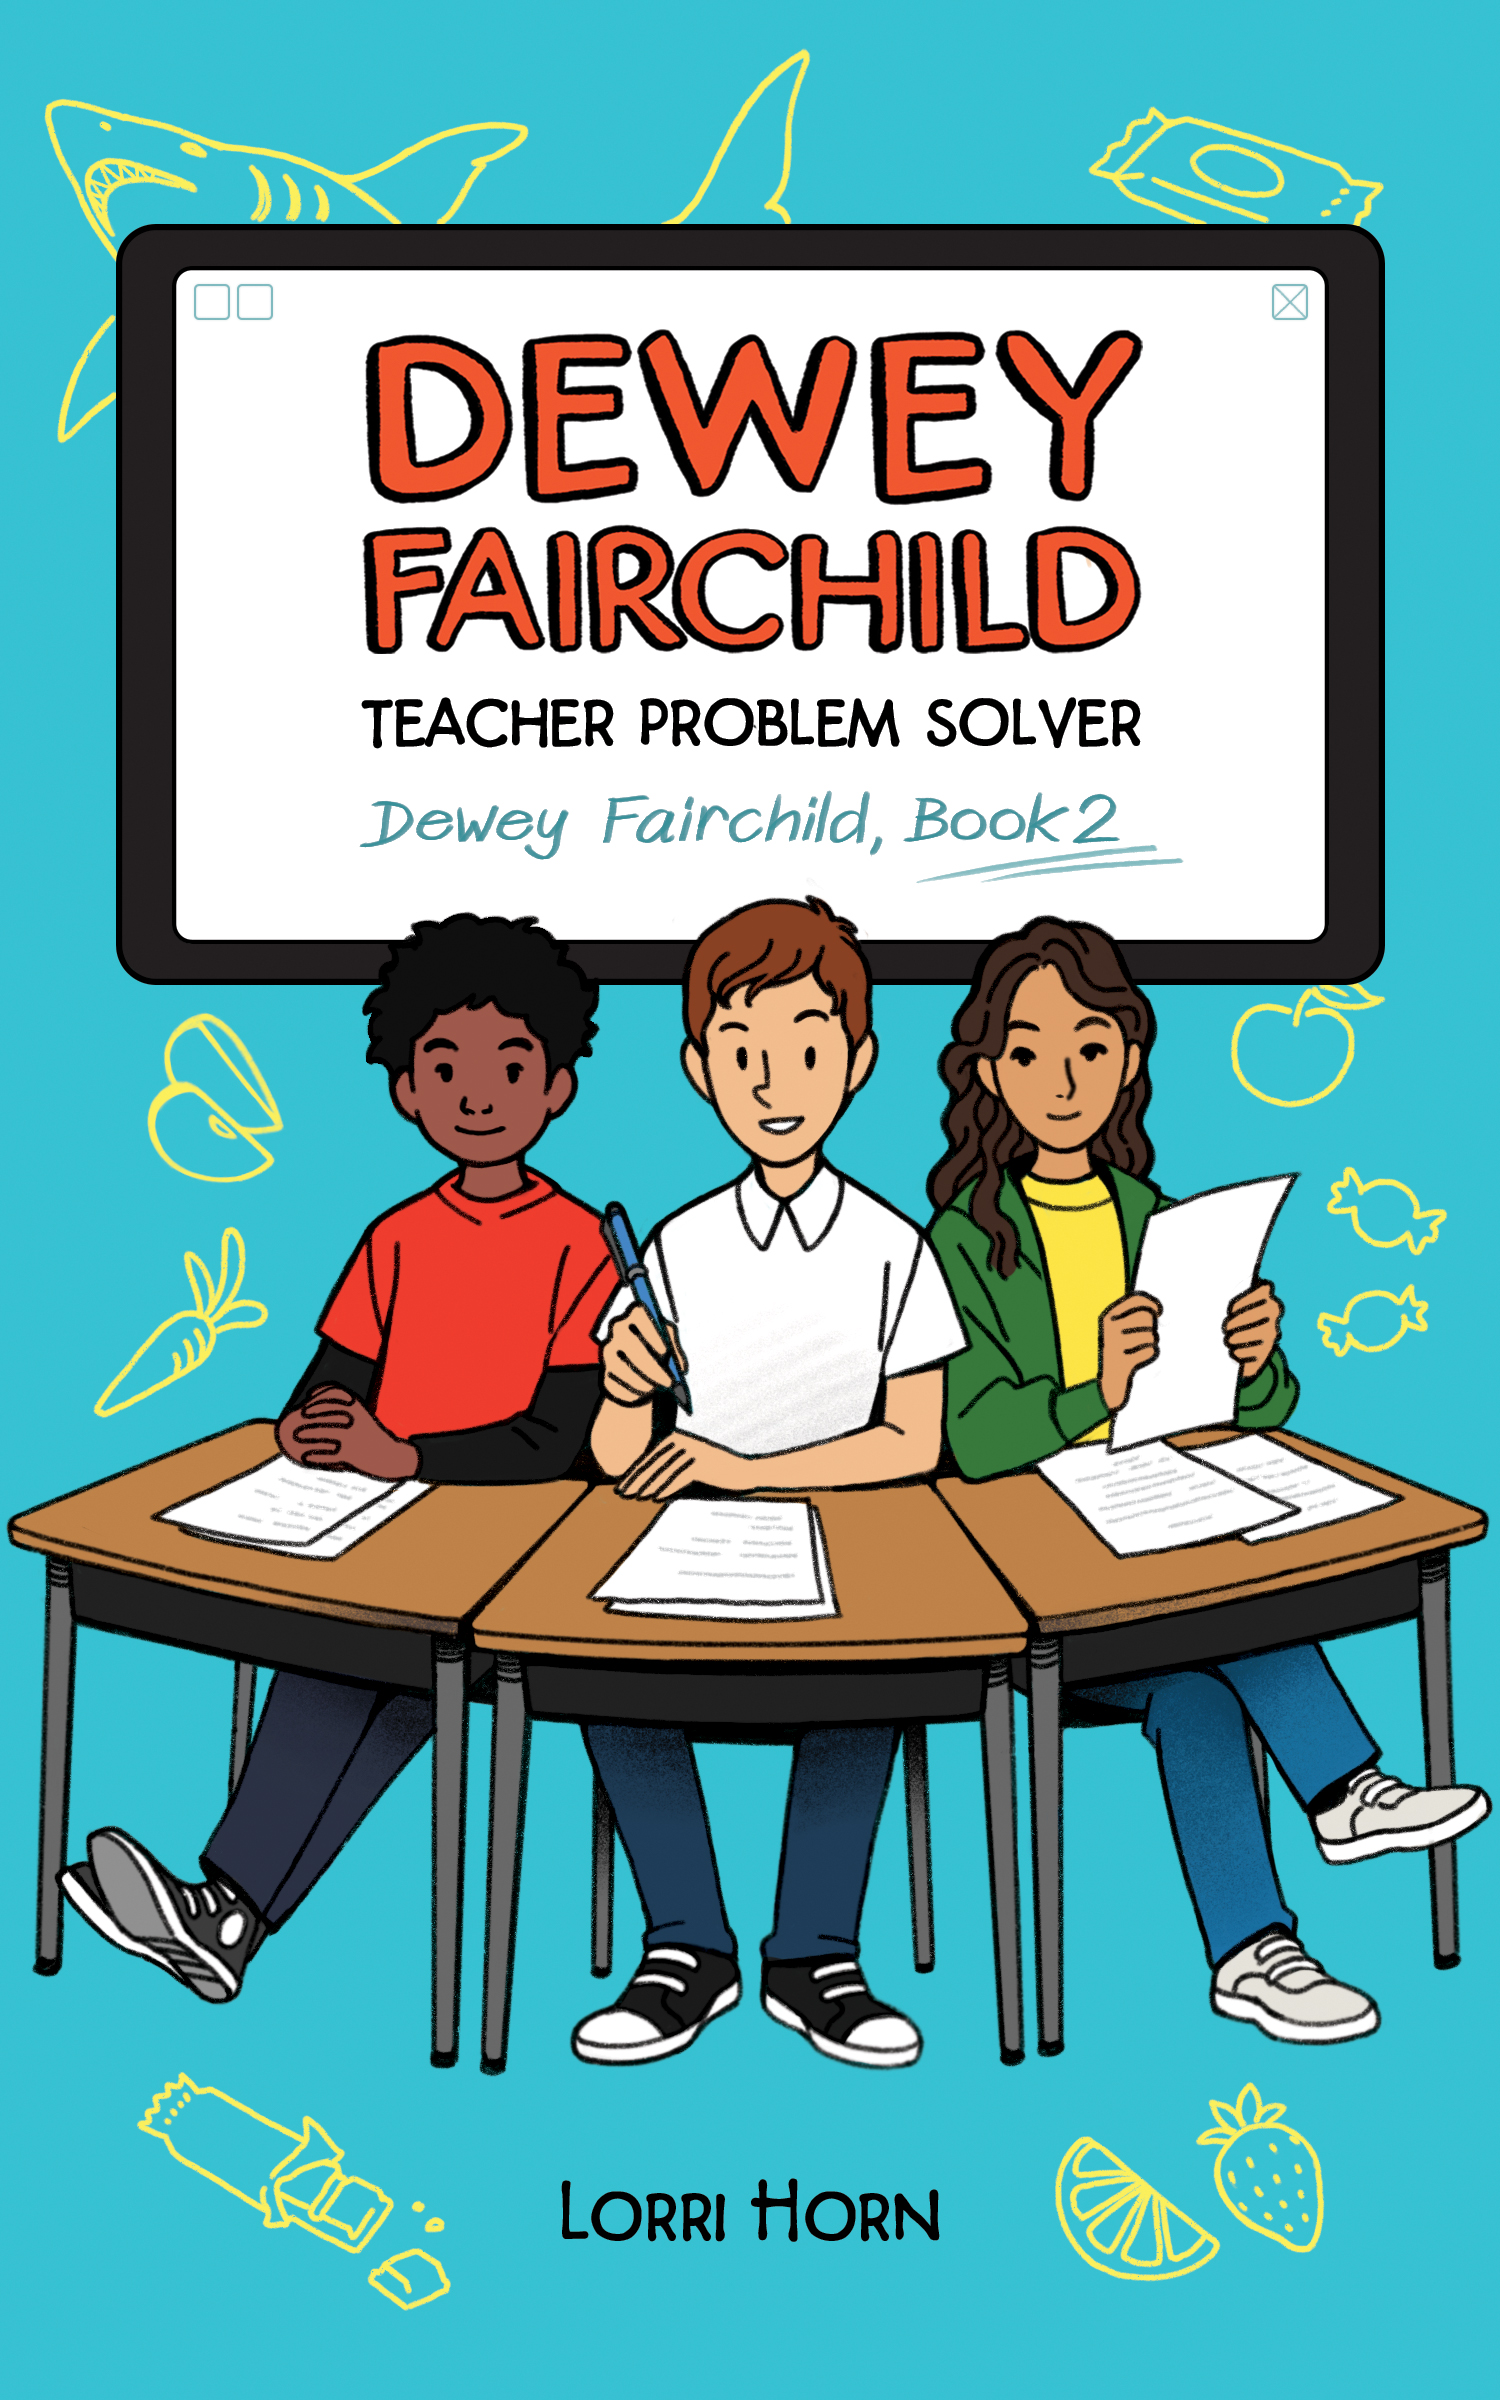 Dewey Fairchild, Teacher Problem Solver